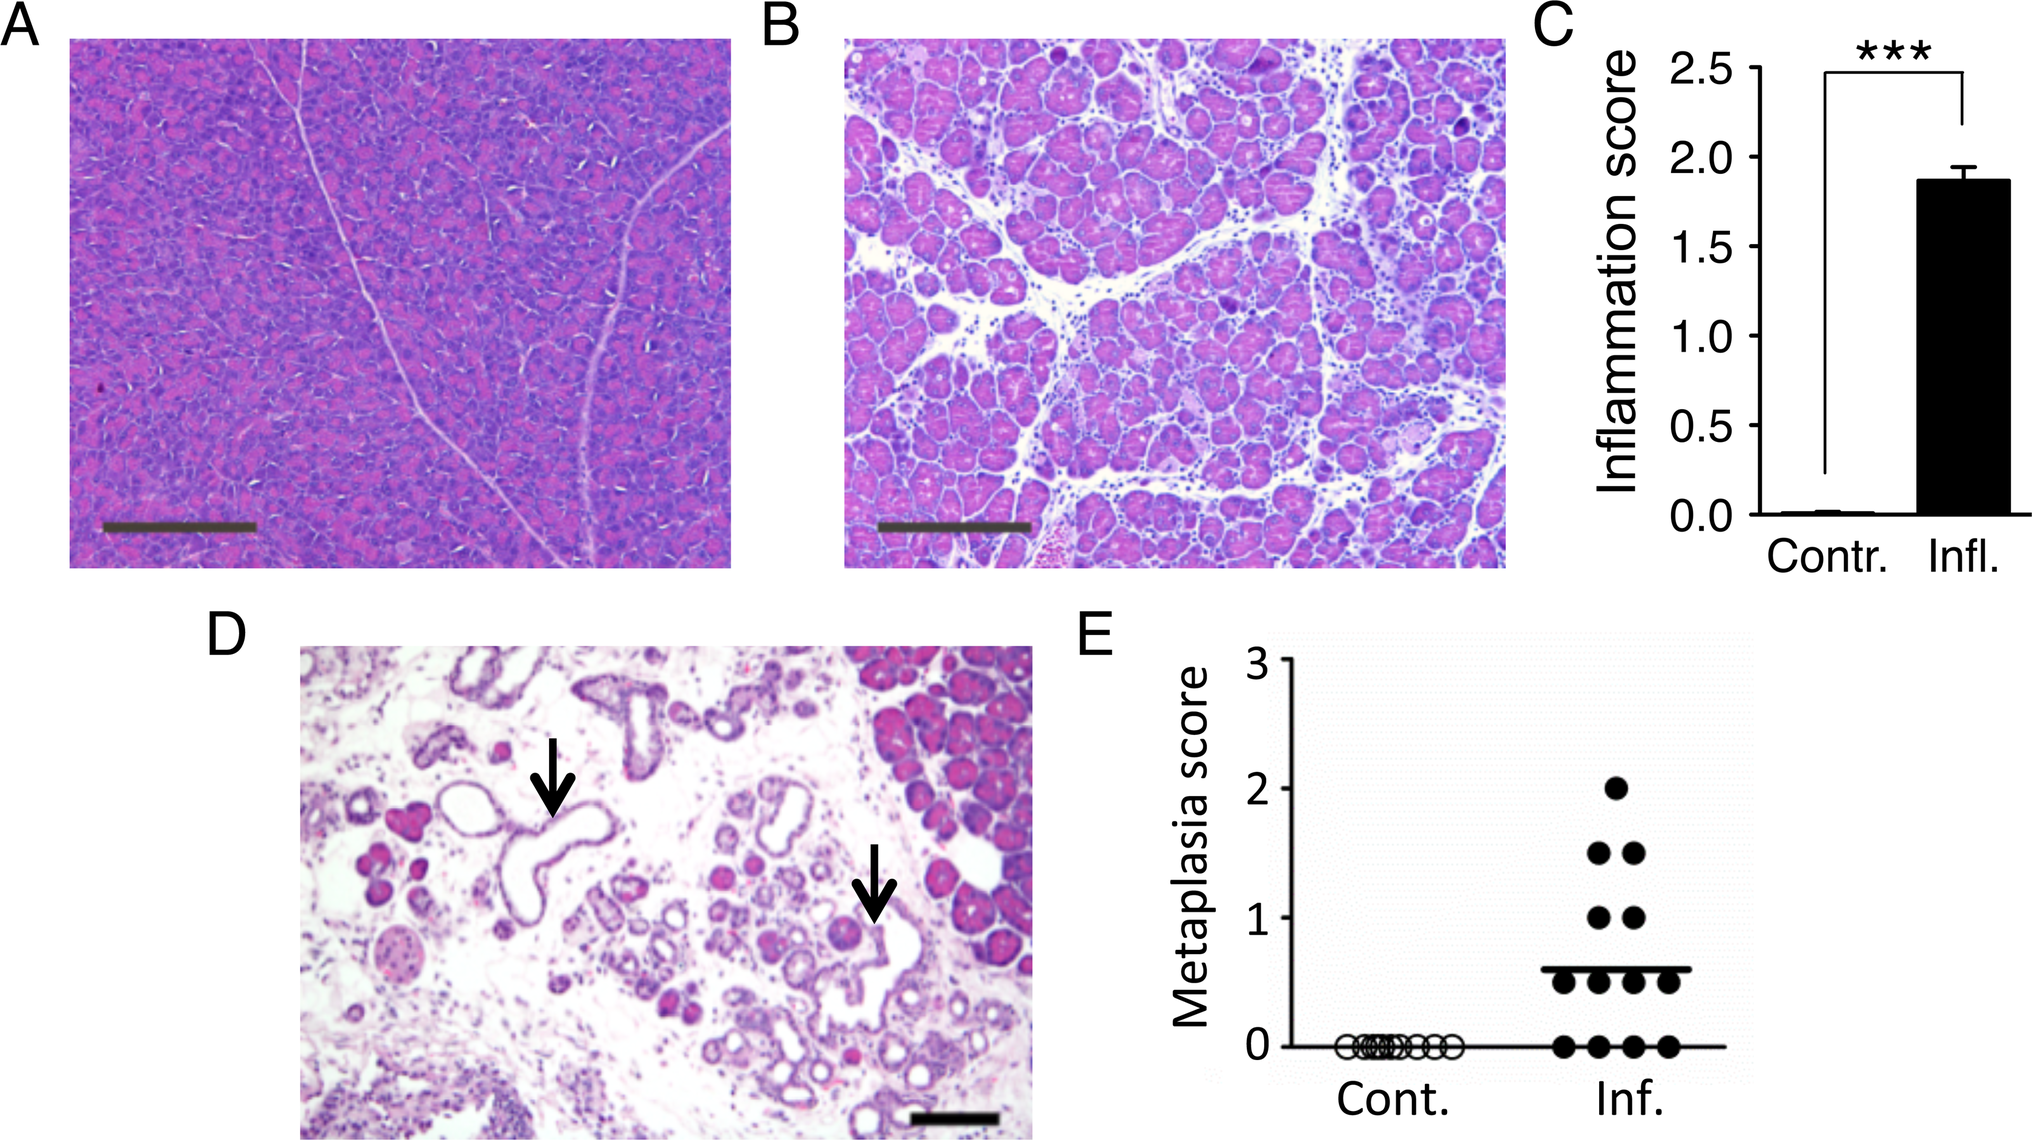 Cerulein treatment induces inflammation in the pancreas, and chronic cerulein pancreatitis induces metaplastic changes.